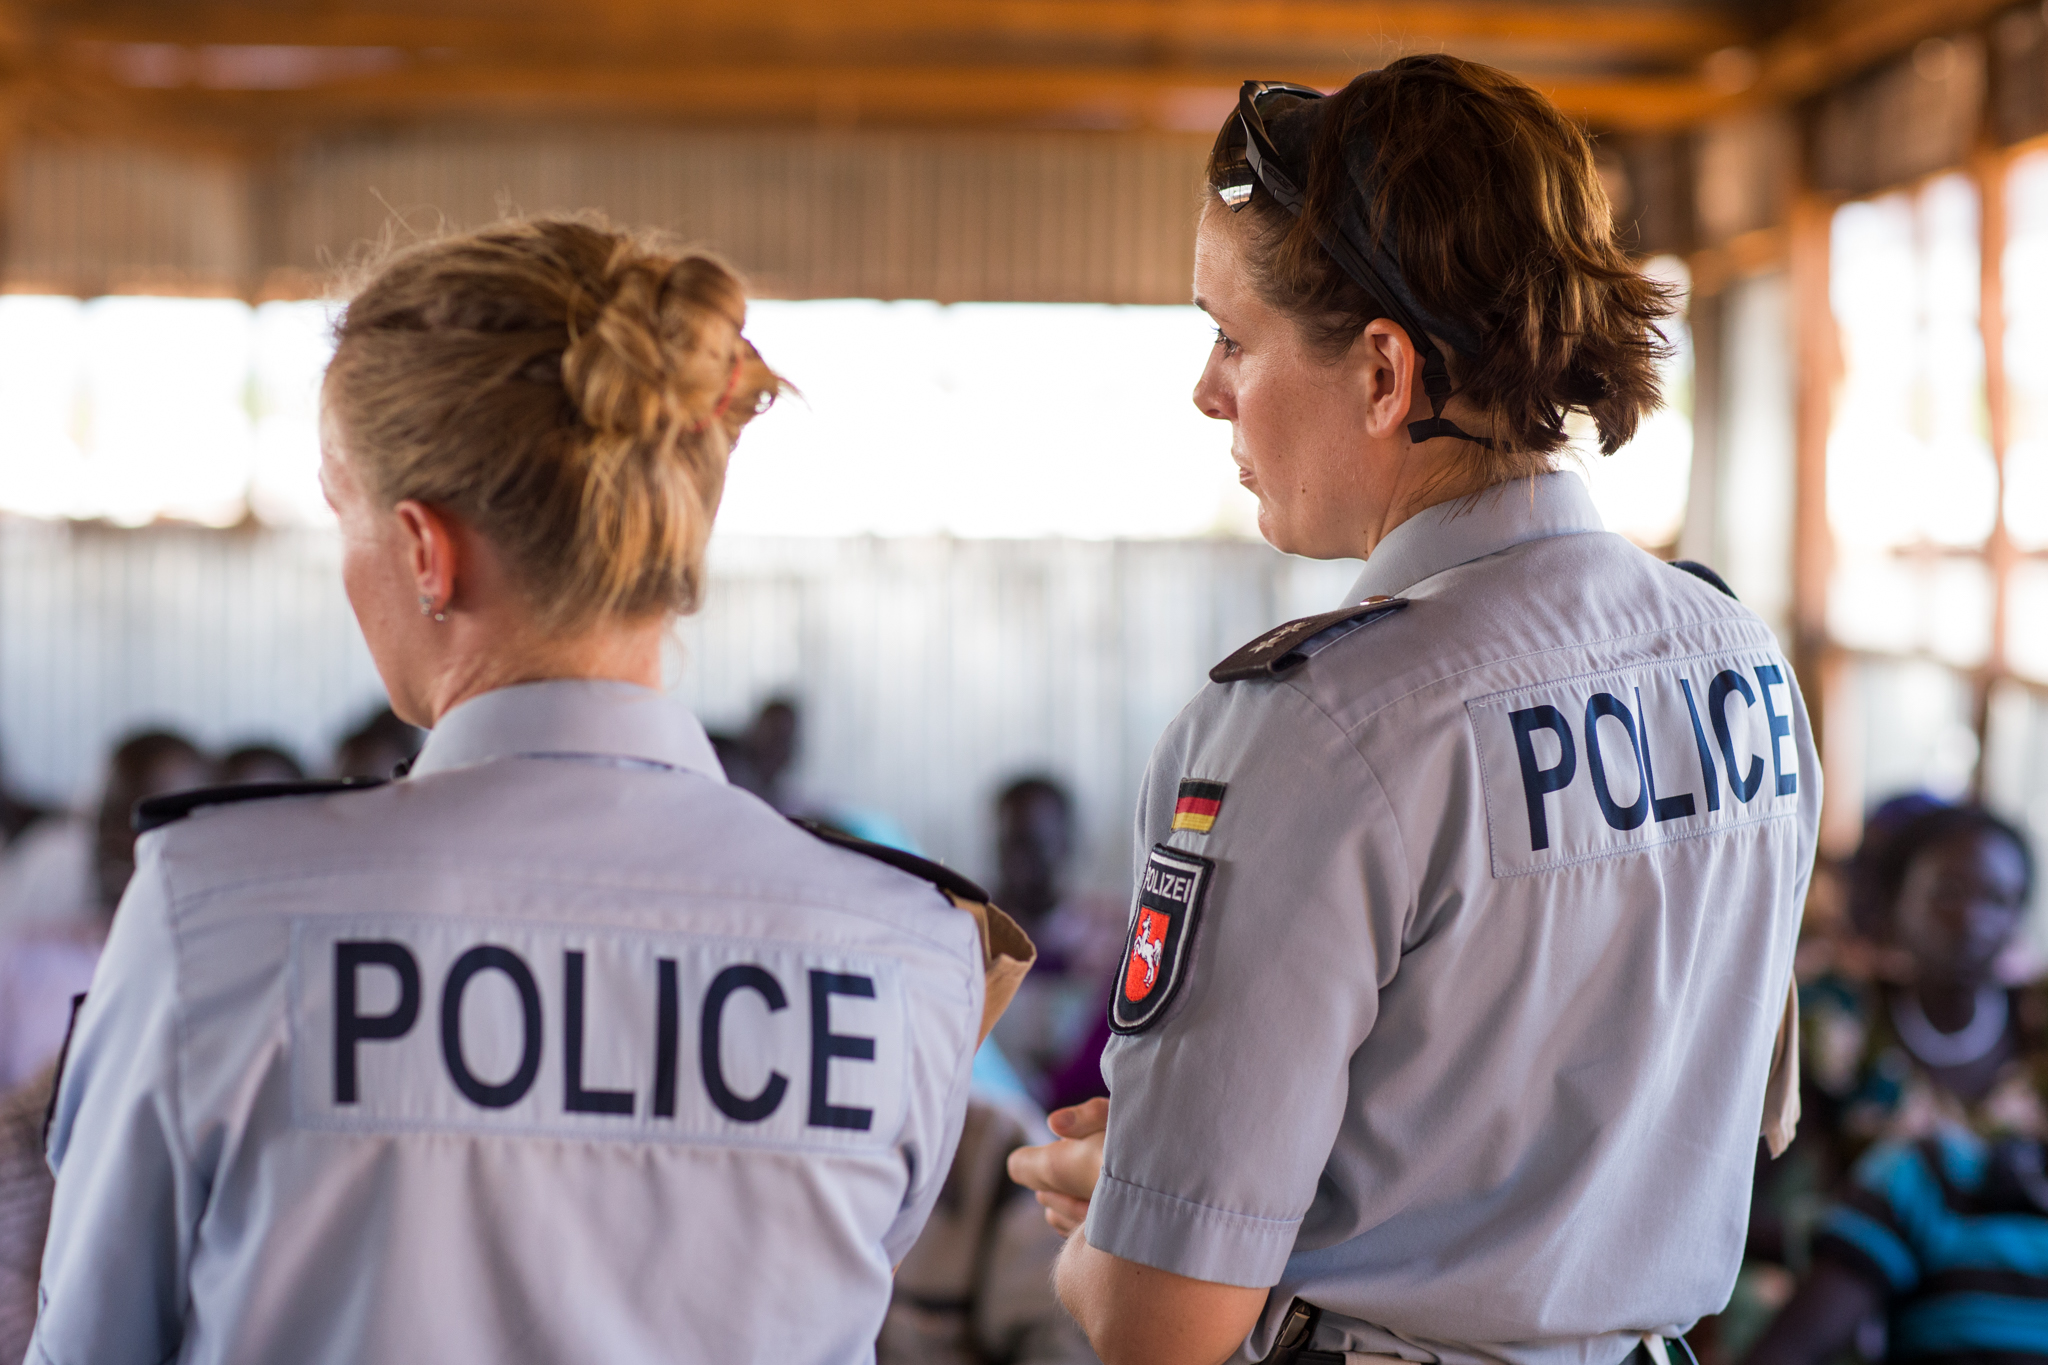 UN police officers in UNMISS delivering a training for the national police in South Sudan. Photo: UNMISS/ Ilya Medvedev